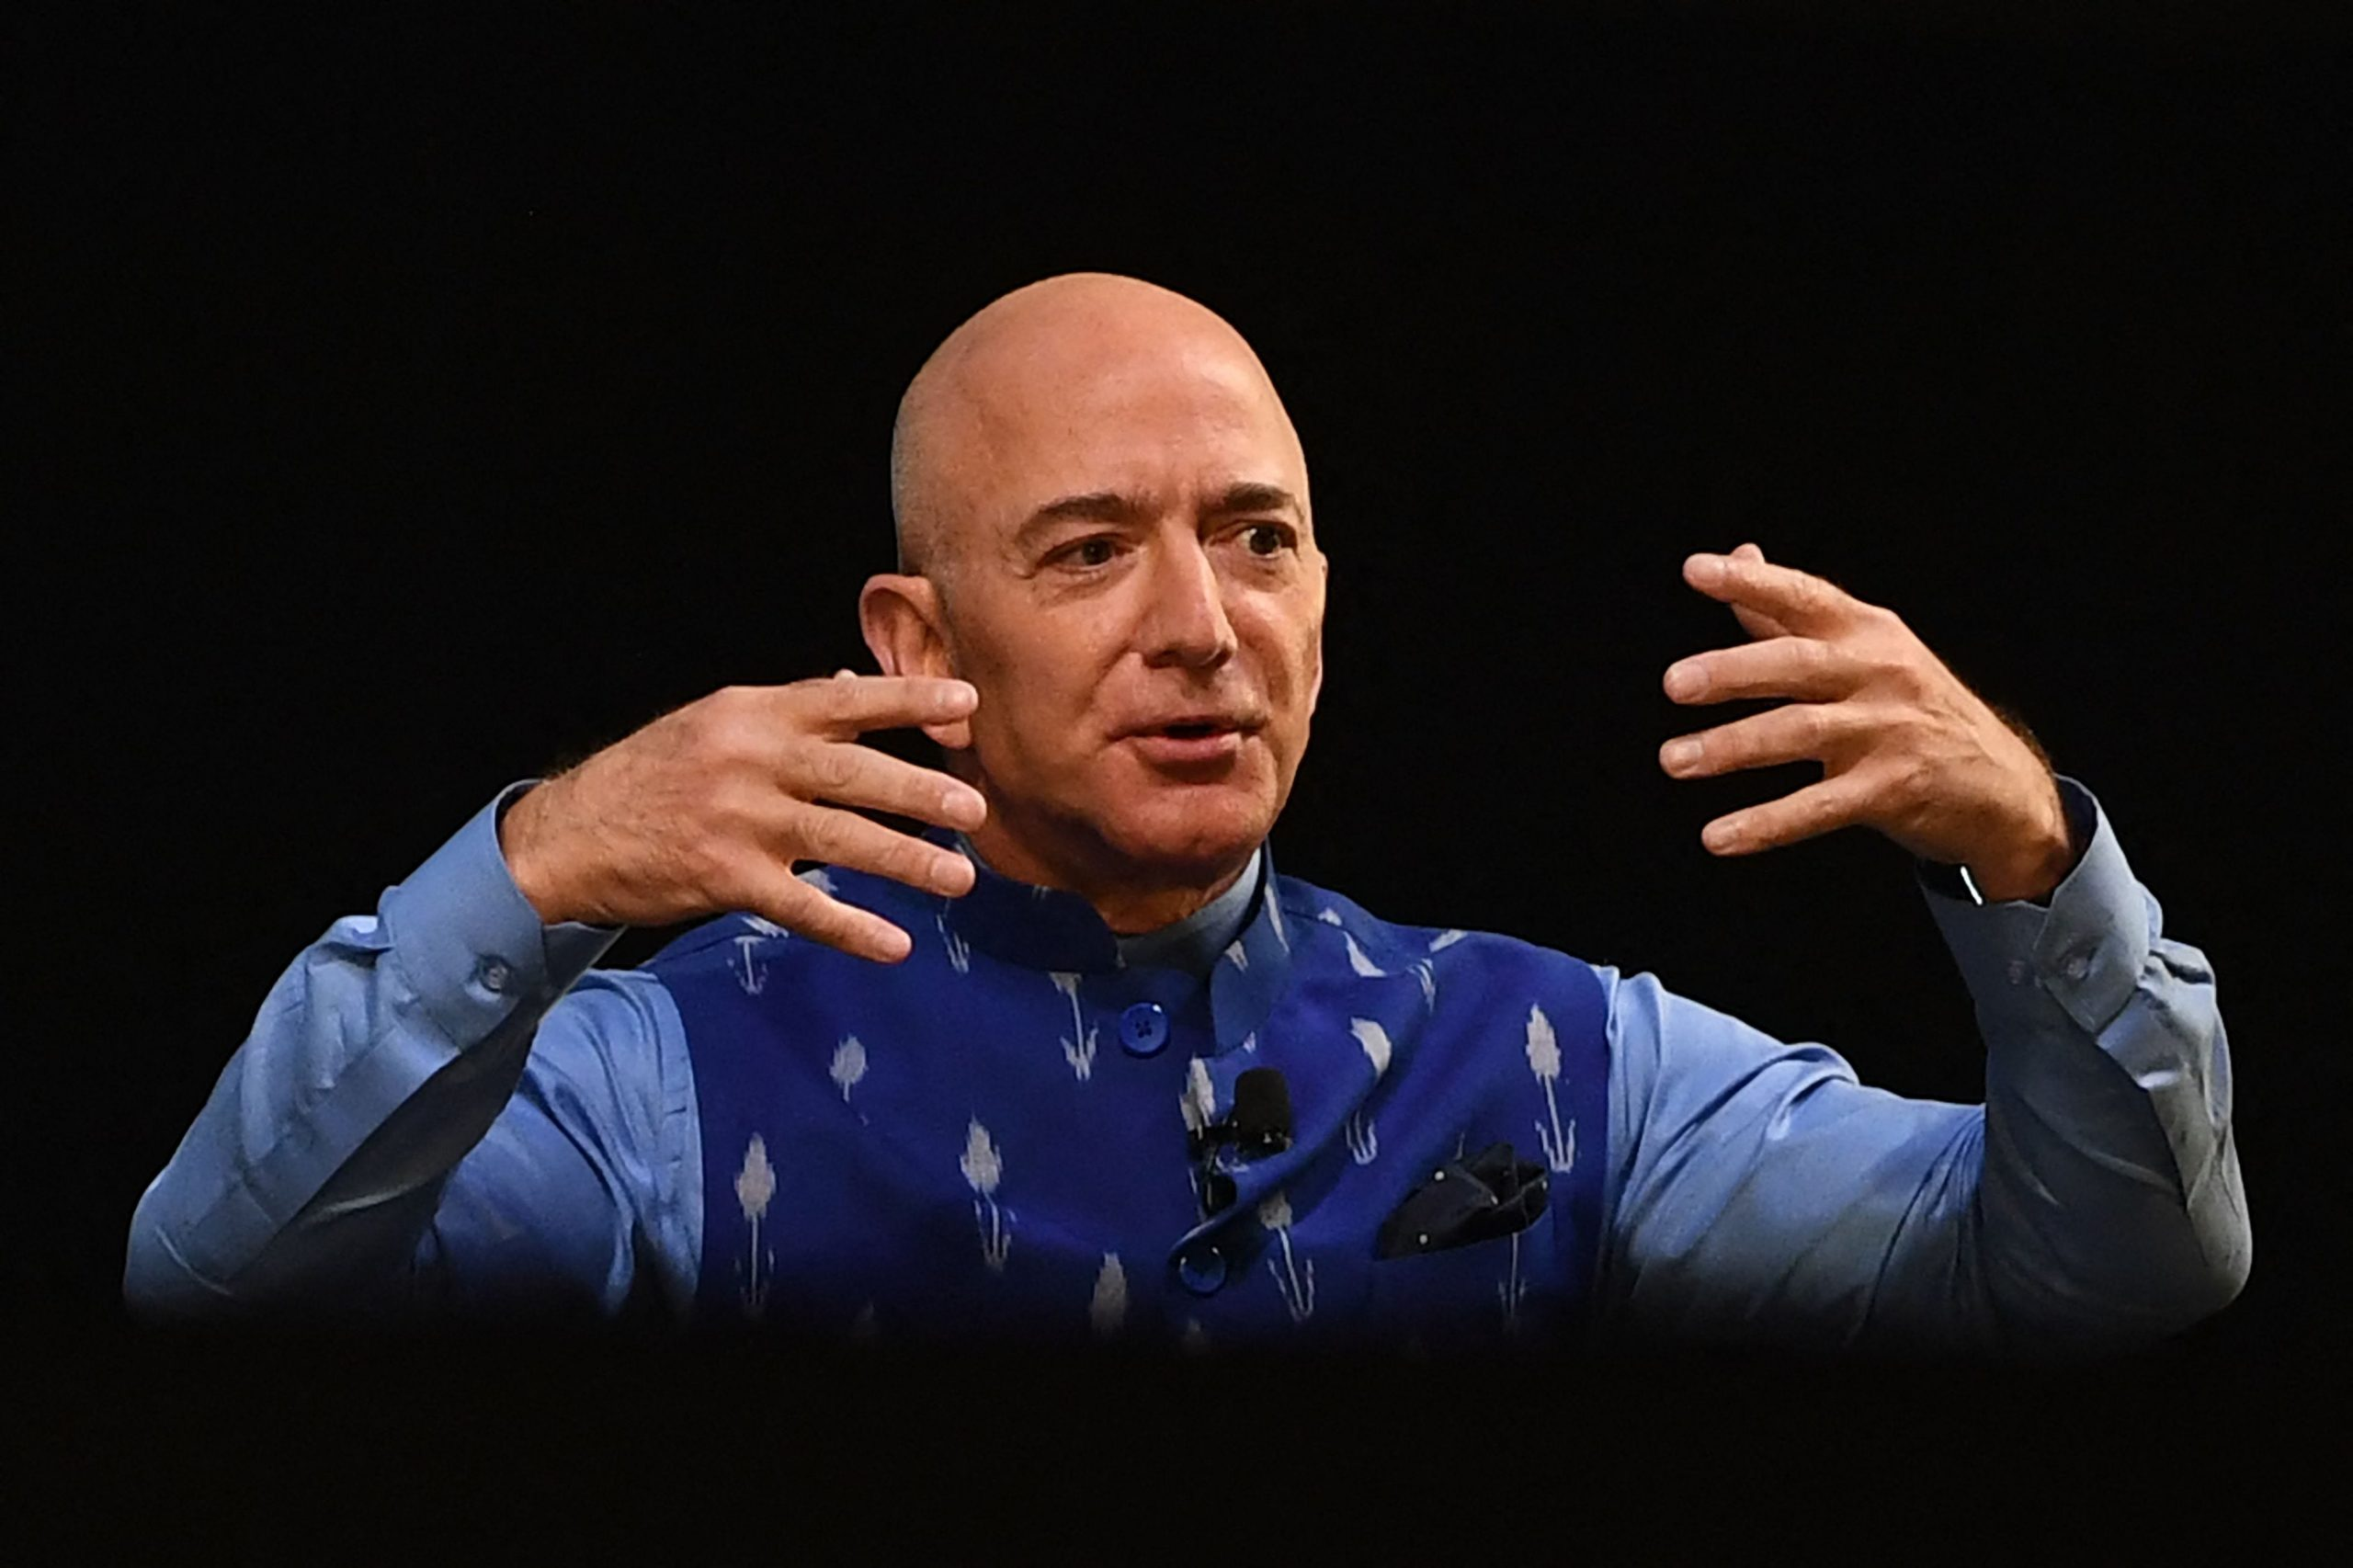 Jeff Bezos is stepping down as CEO. How rich did Amazon make him?